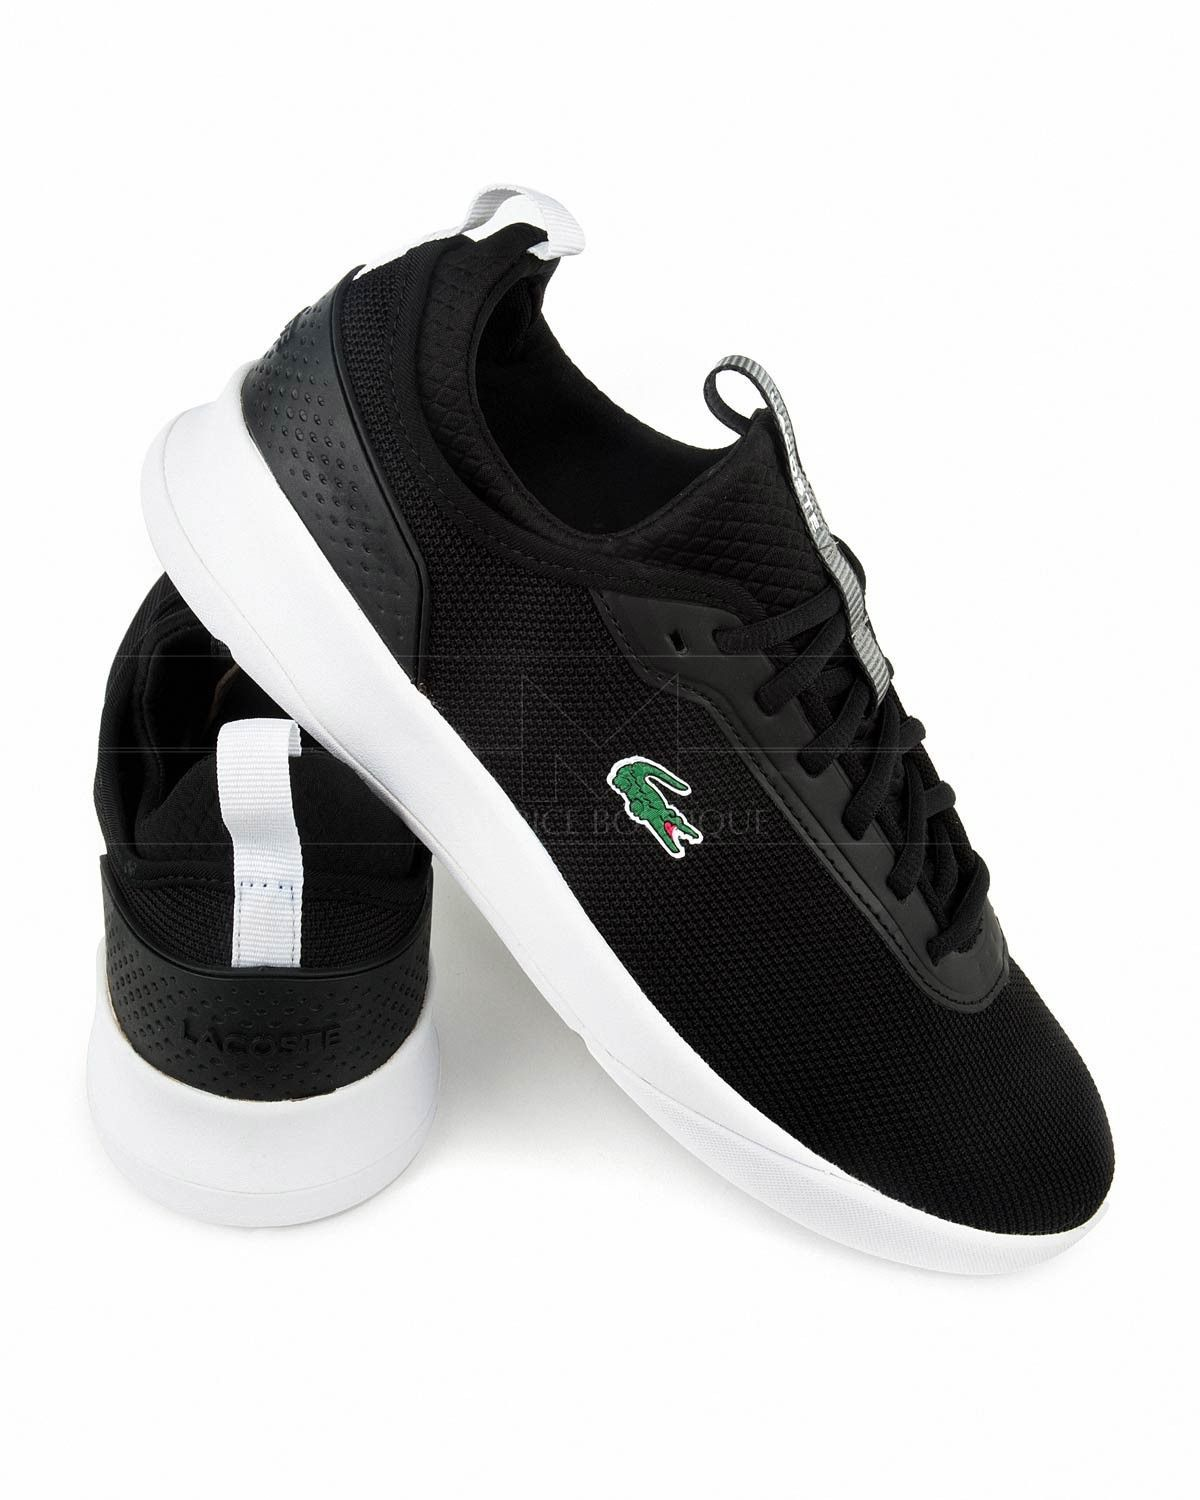 3ddd7cd1e49 Zapatillas LACOSTE ® Spirit ✶ Negro